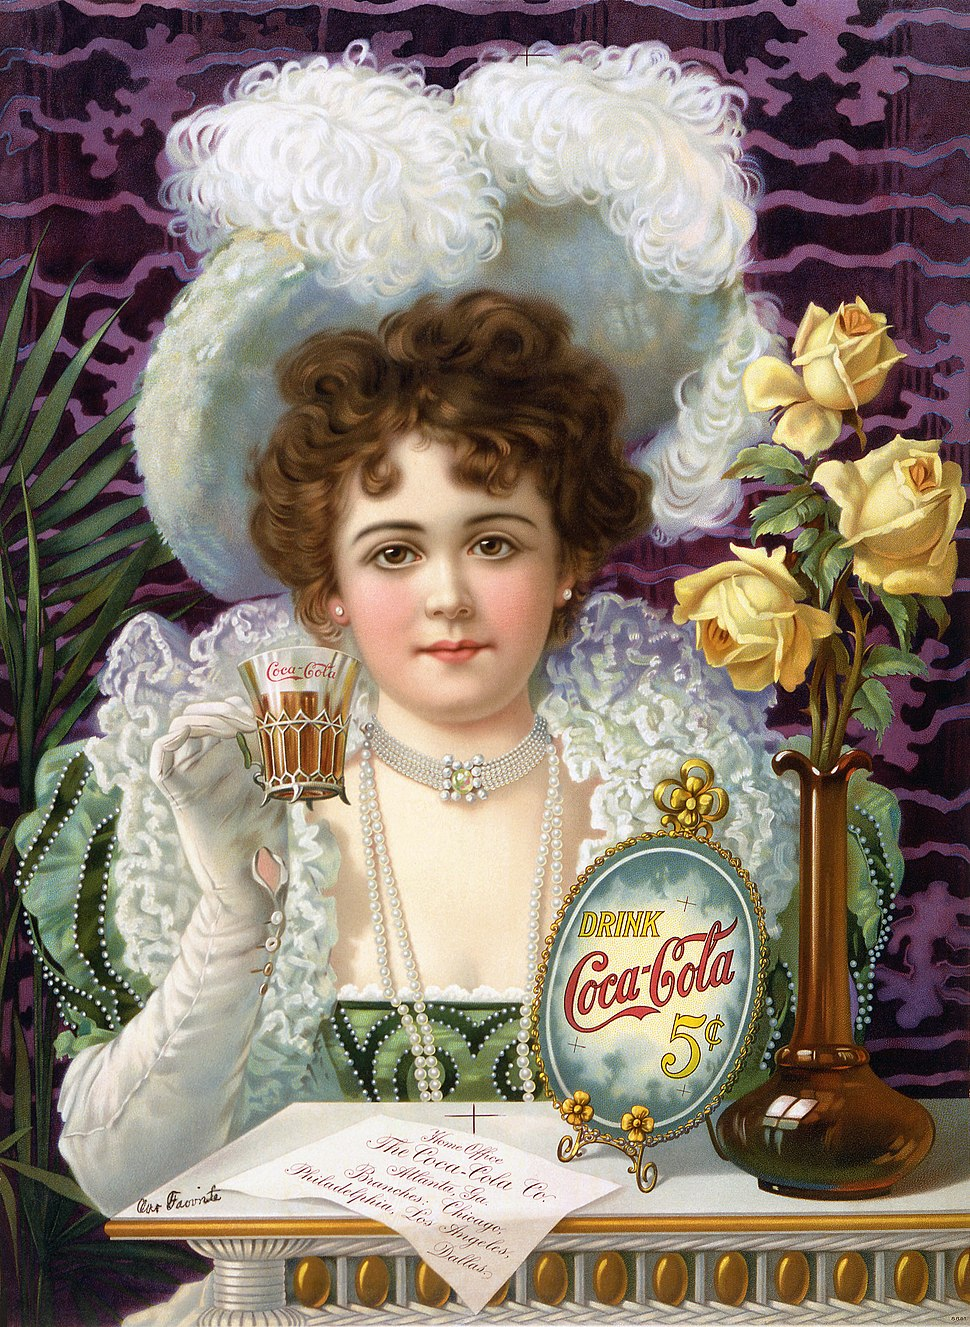 Cocacola-5cents-1900 edit2